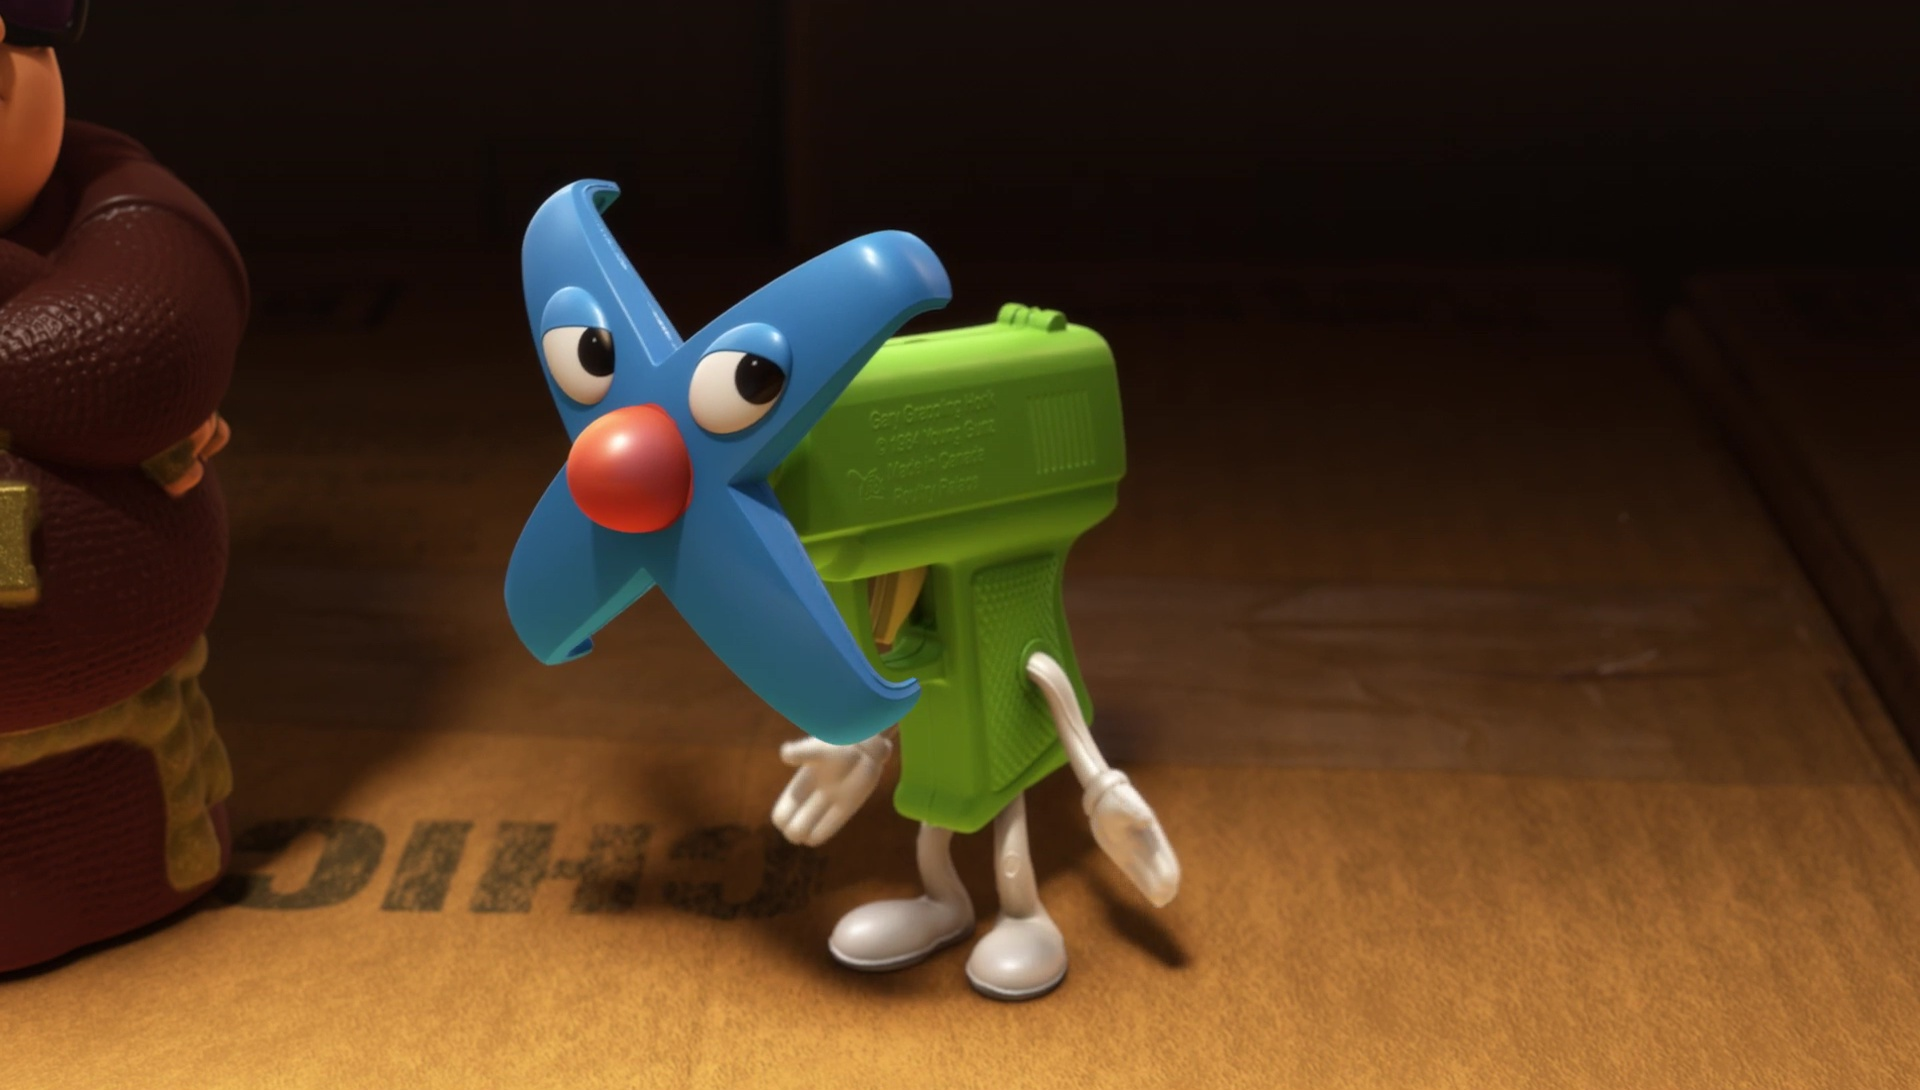 gary lance grappin Grappling Hook personnage character pixar disney toy story toons mini buzz small fry